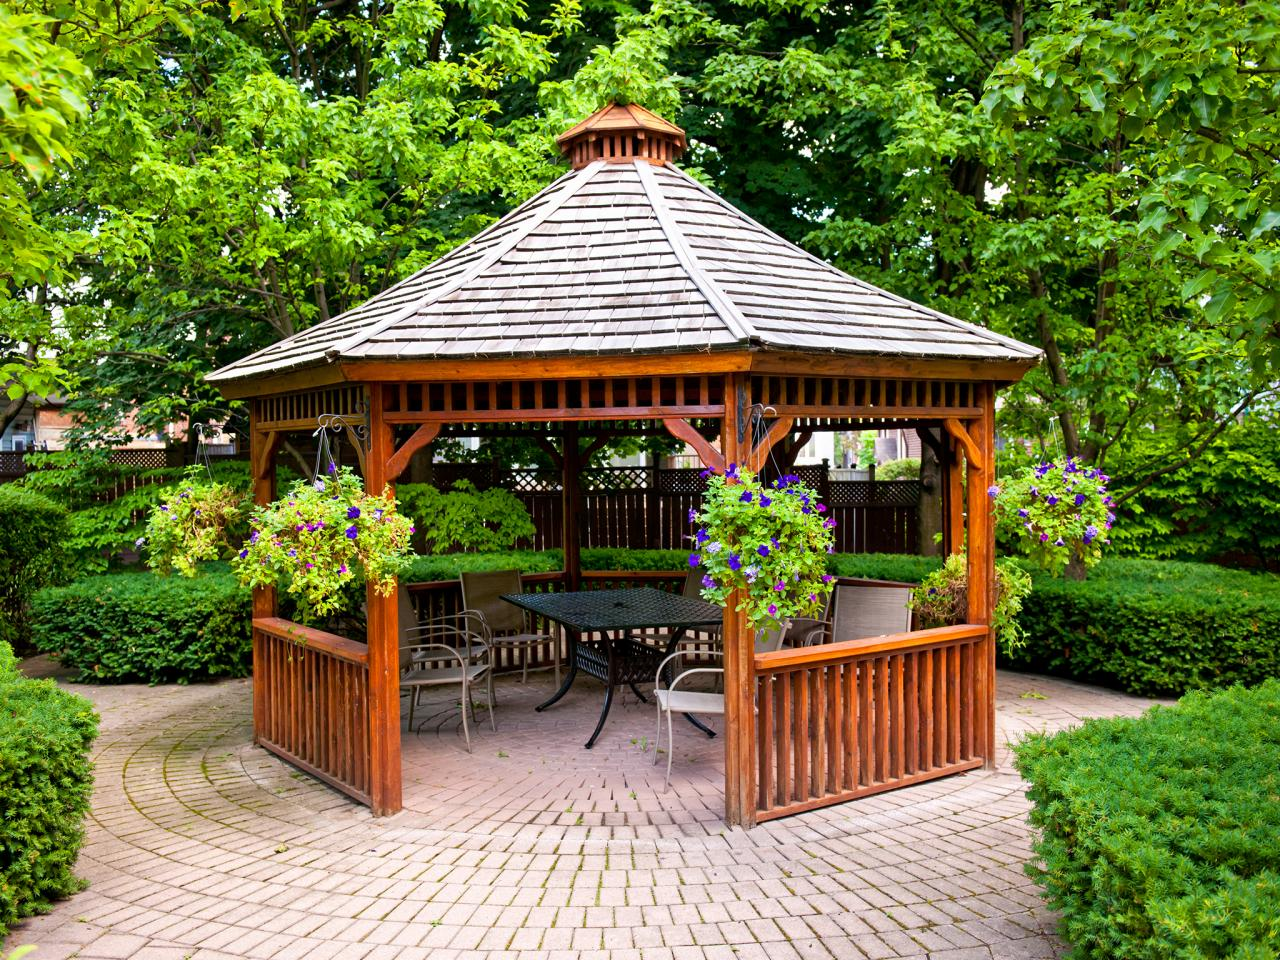 Patio gazebos hgtv for Built in gazebo